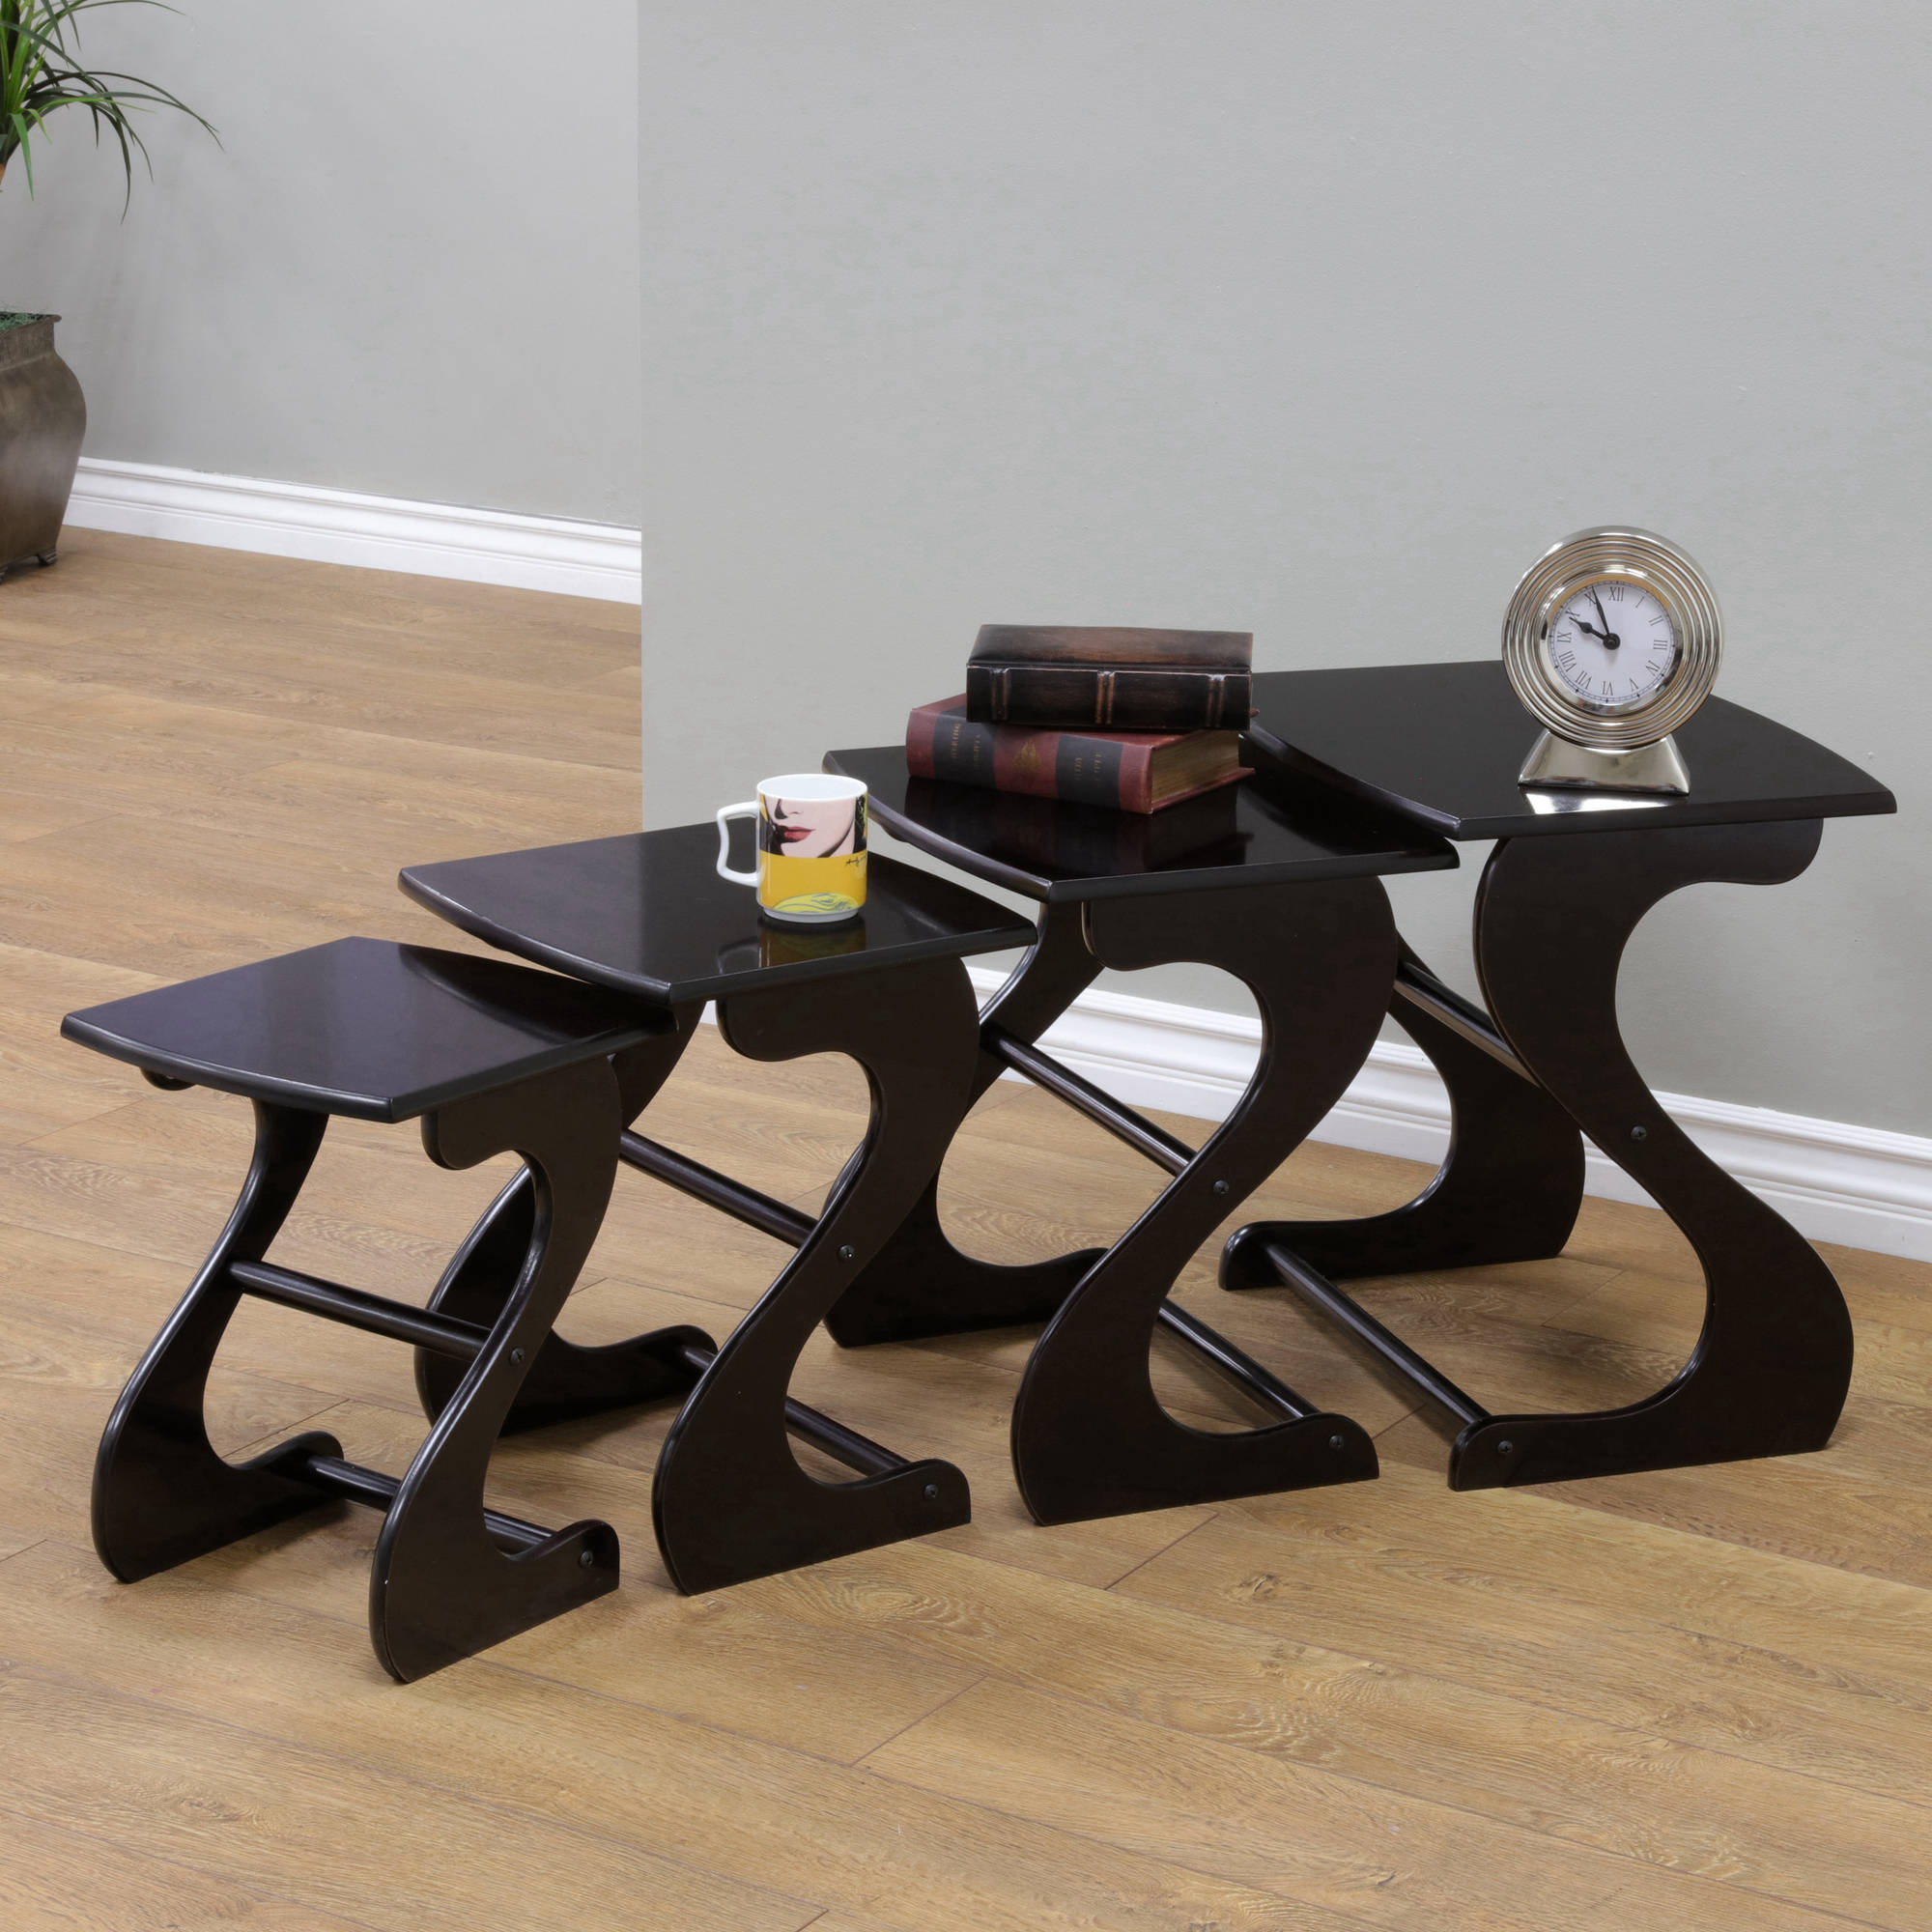 Home Craft 4-Piece Nesting Tables